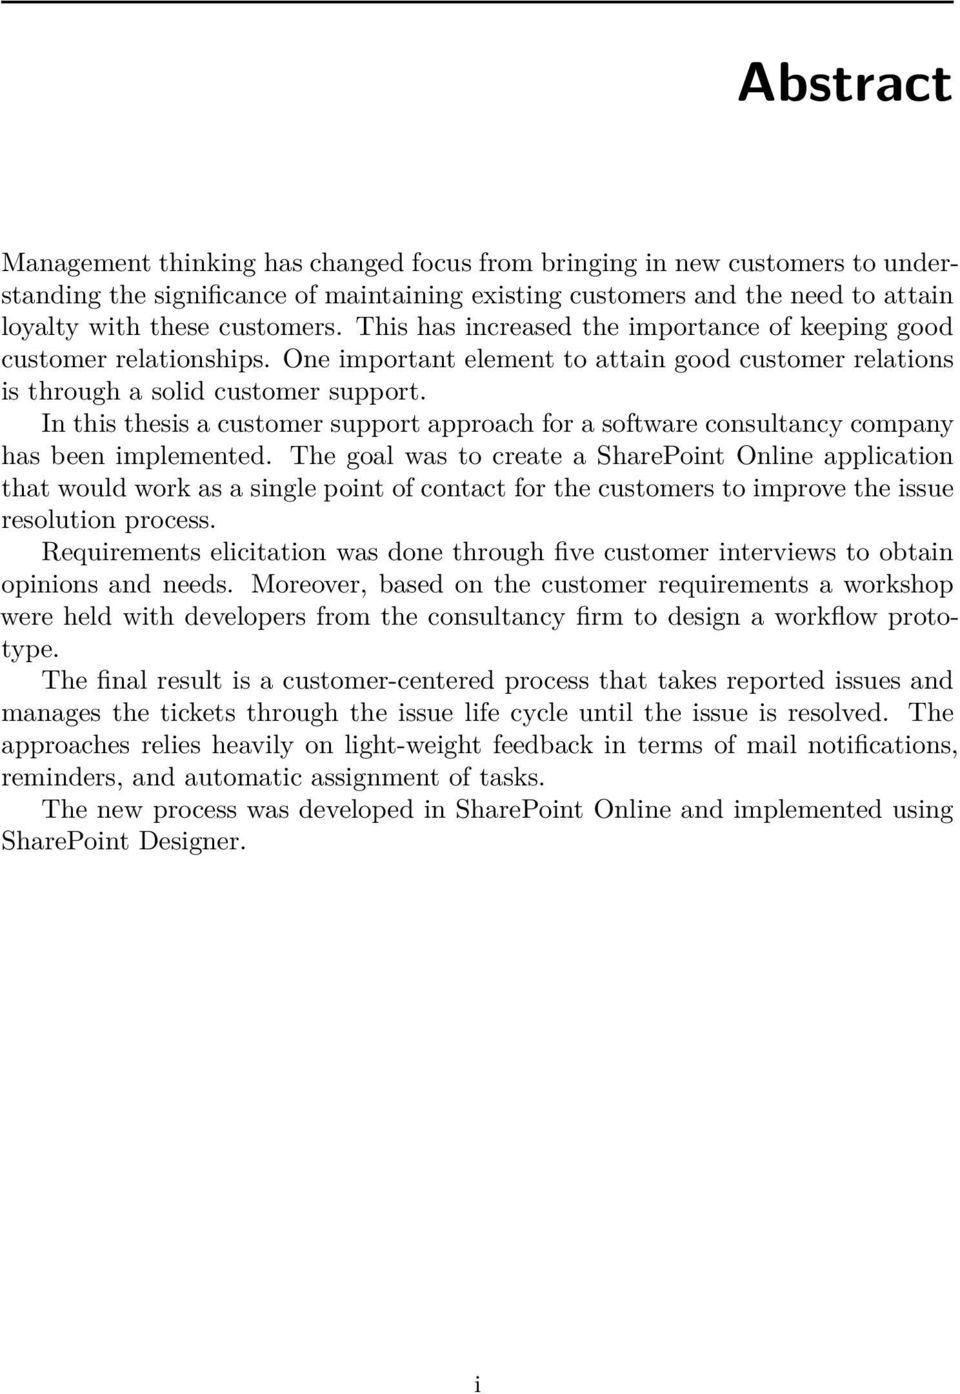 In this thesis a customer support approach for a software consultancy company has been implemented.